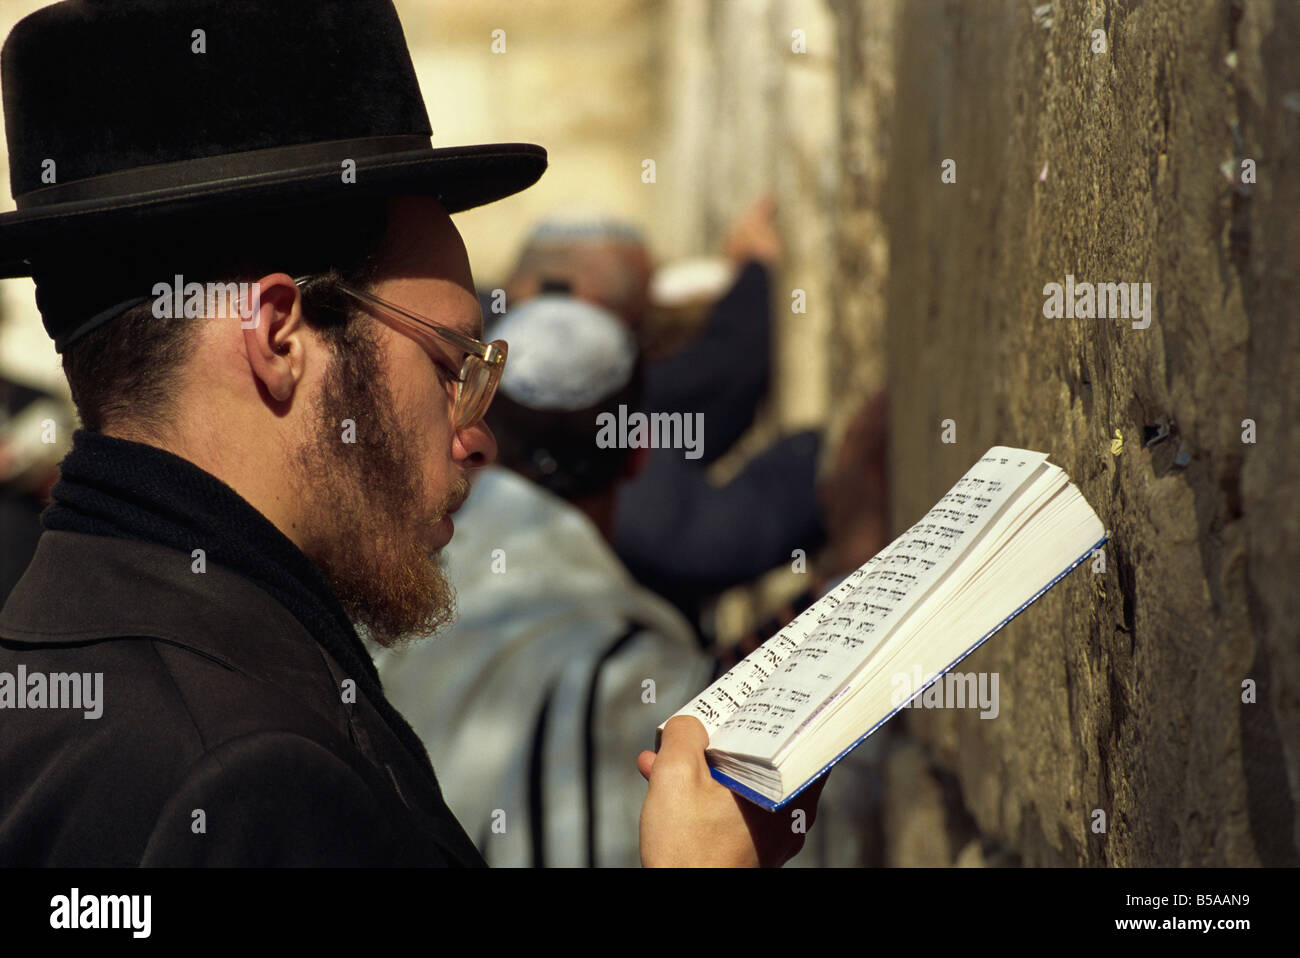 Close-up of Orthodox Jew praying with a book in his hand at the Western Wall in Jerusalem, Israel, Middle East - Stock Image